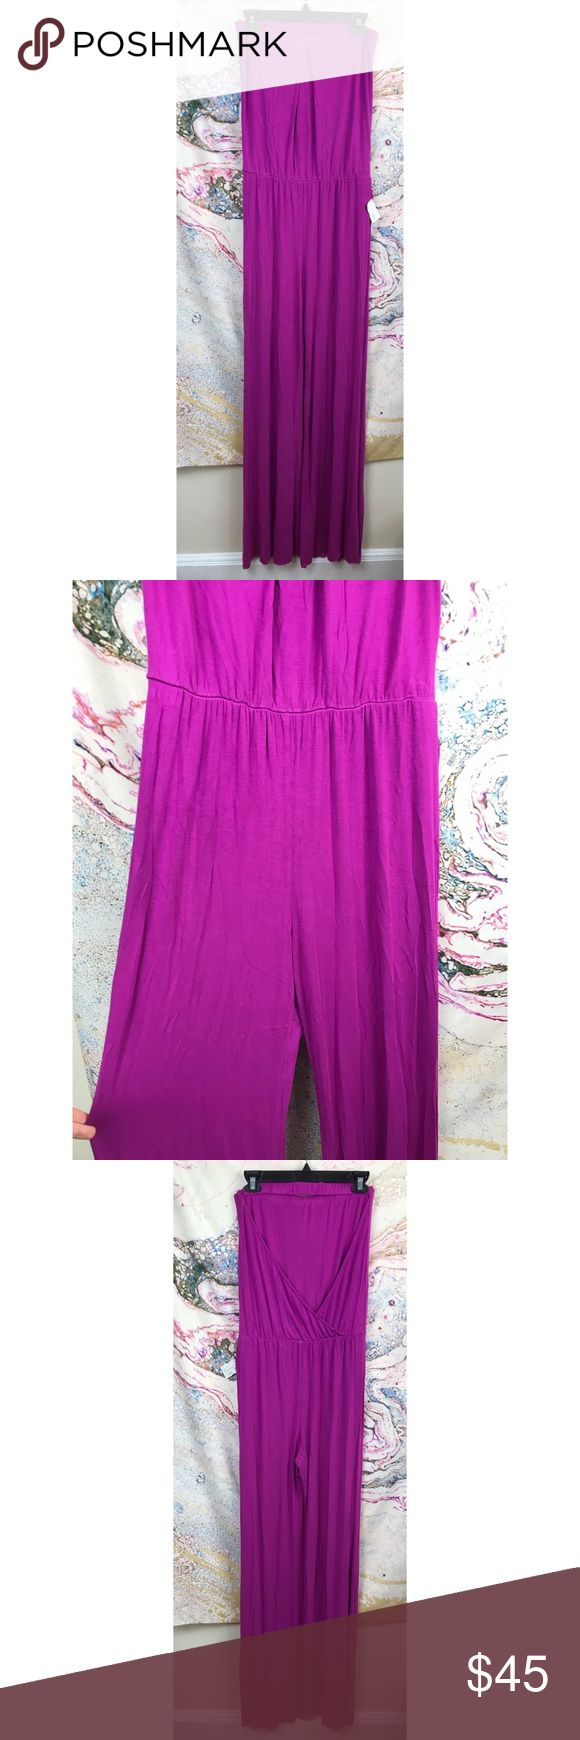 """YF&B Alaia strapless open back jumpsuit romper Med Super cute & brand new women's Young Fabulous & Broke """"Alaia"""" jumpsuit in orchid (purple), size medium. Open drapes back with stretch waist band. Jumpsuit for sale is in orchid, black stock photos are to show fit. Much better looking on than on the hanger!!  Pit to pit: 14"""", rise: 11"""", inseam: 34"""" Young Fabulous & Broke Pants Jumpsuits & Rompers"""